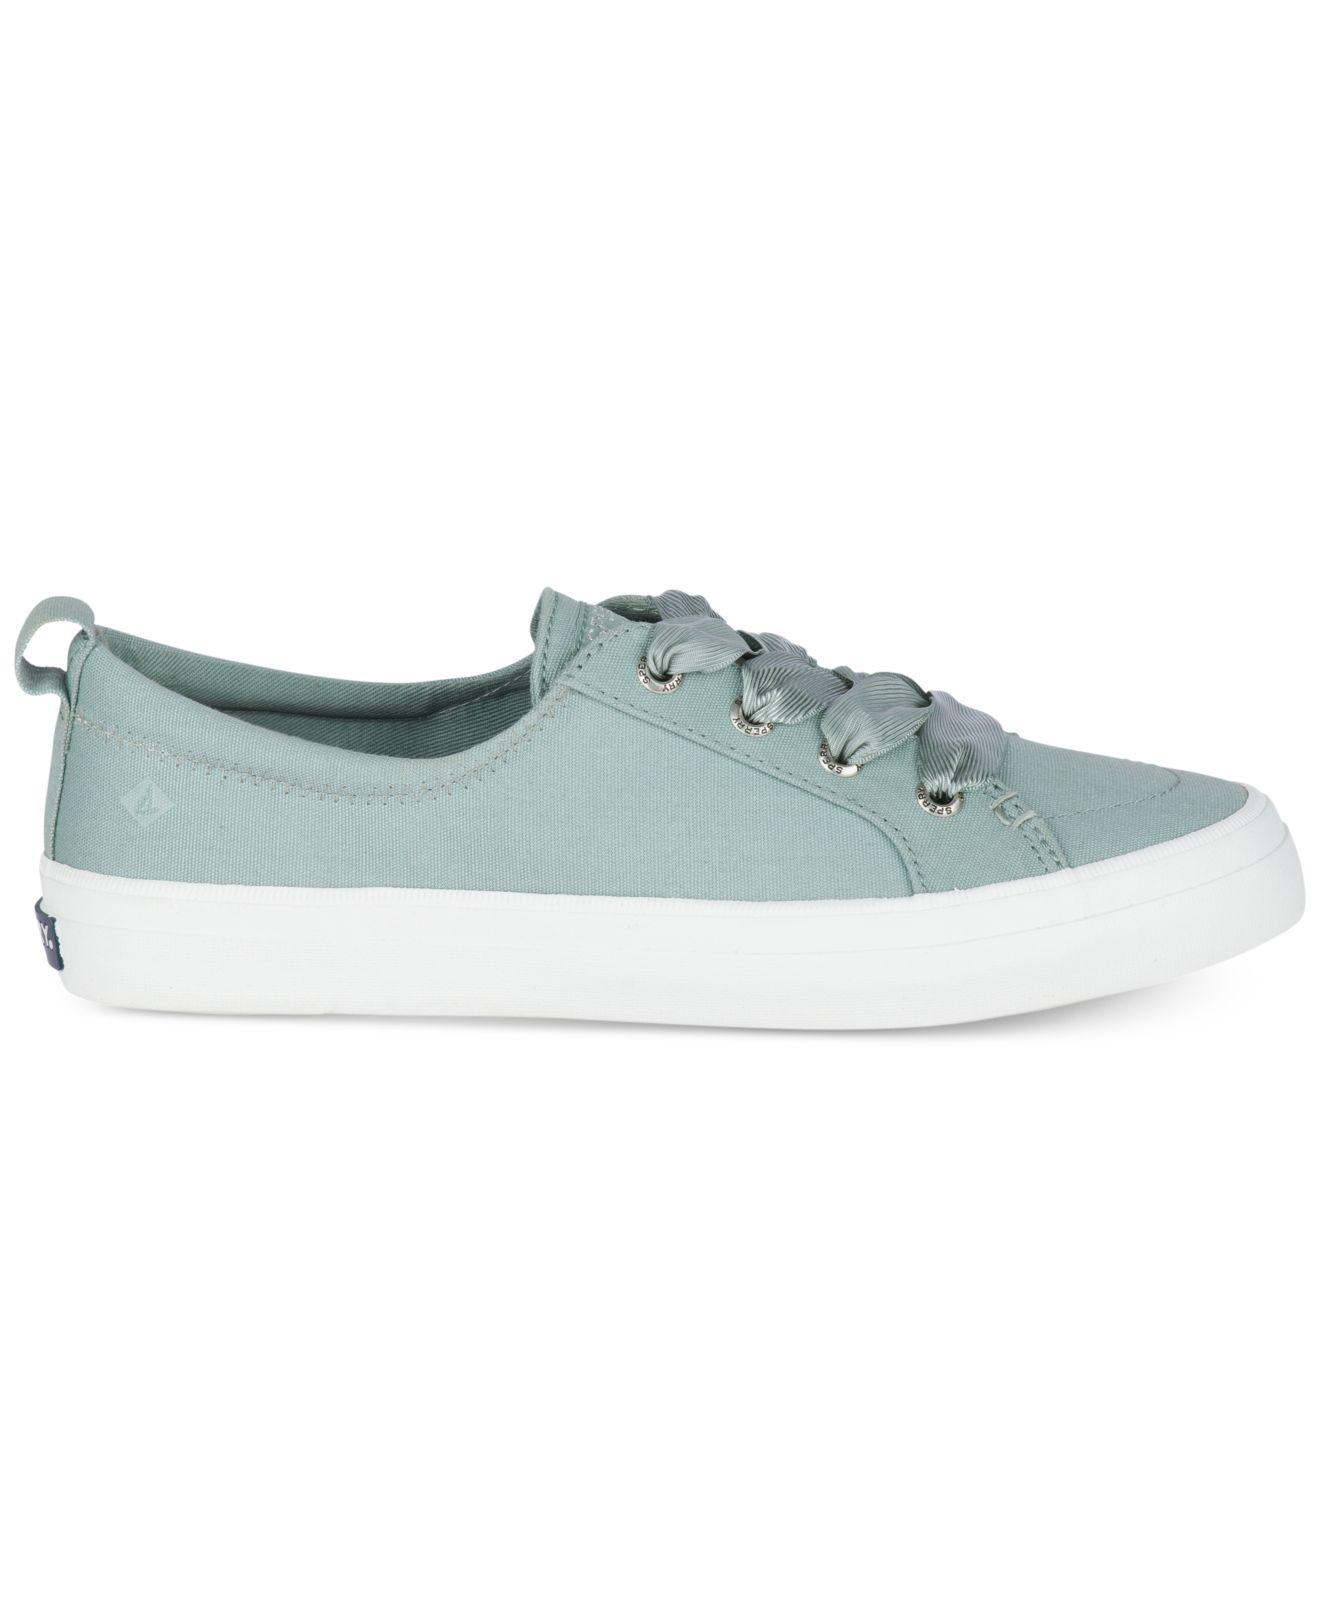 Sperry Women's Crest Vibe Satin Lace-Up Memory Foam Fashion Sneakers Women's Shoes NL8ru